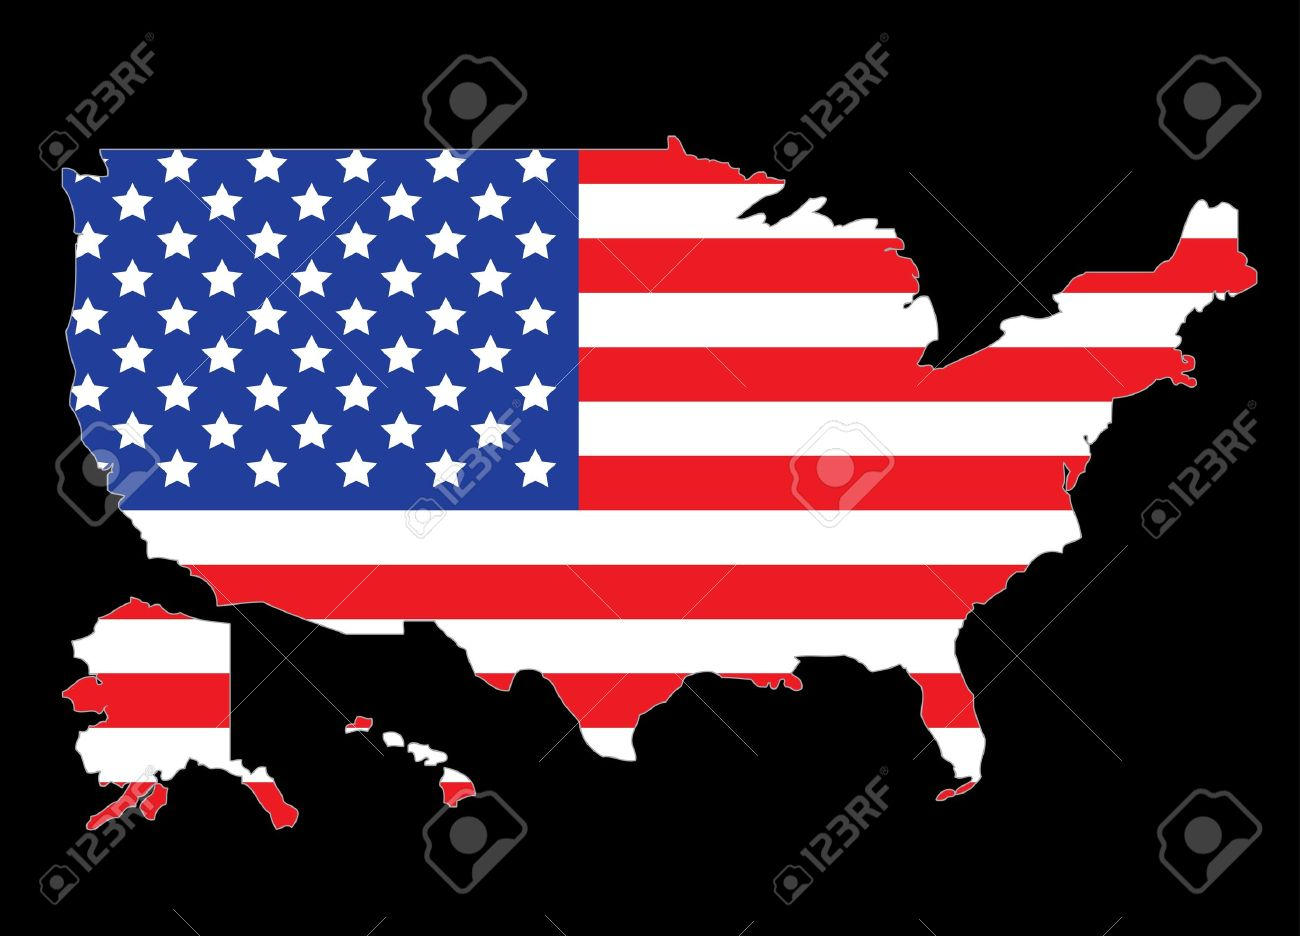 USA map outline with United States flag vector illustration